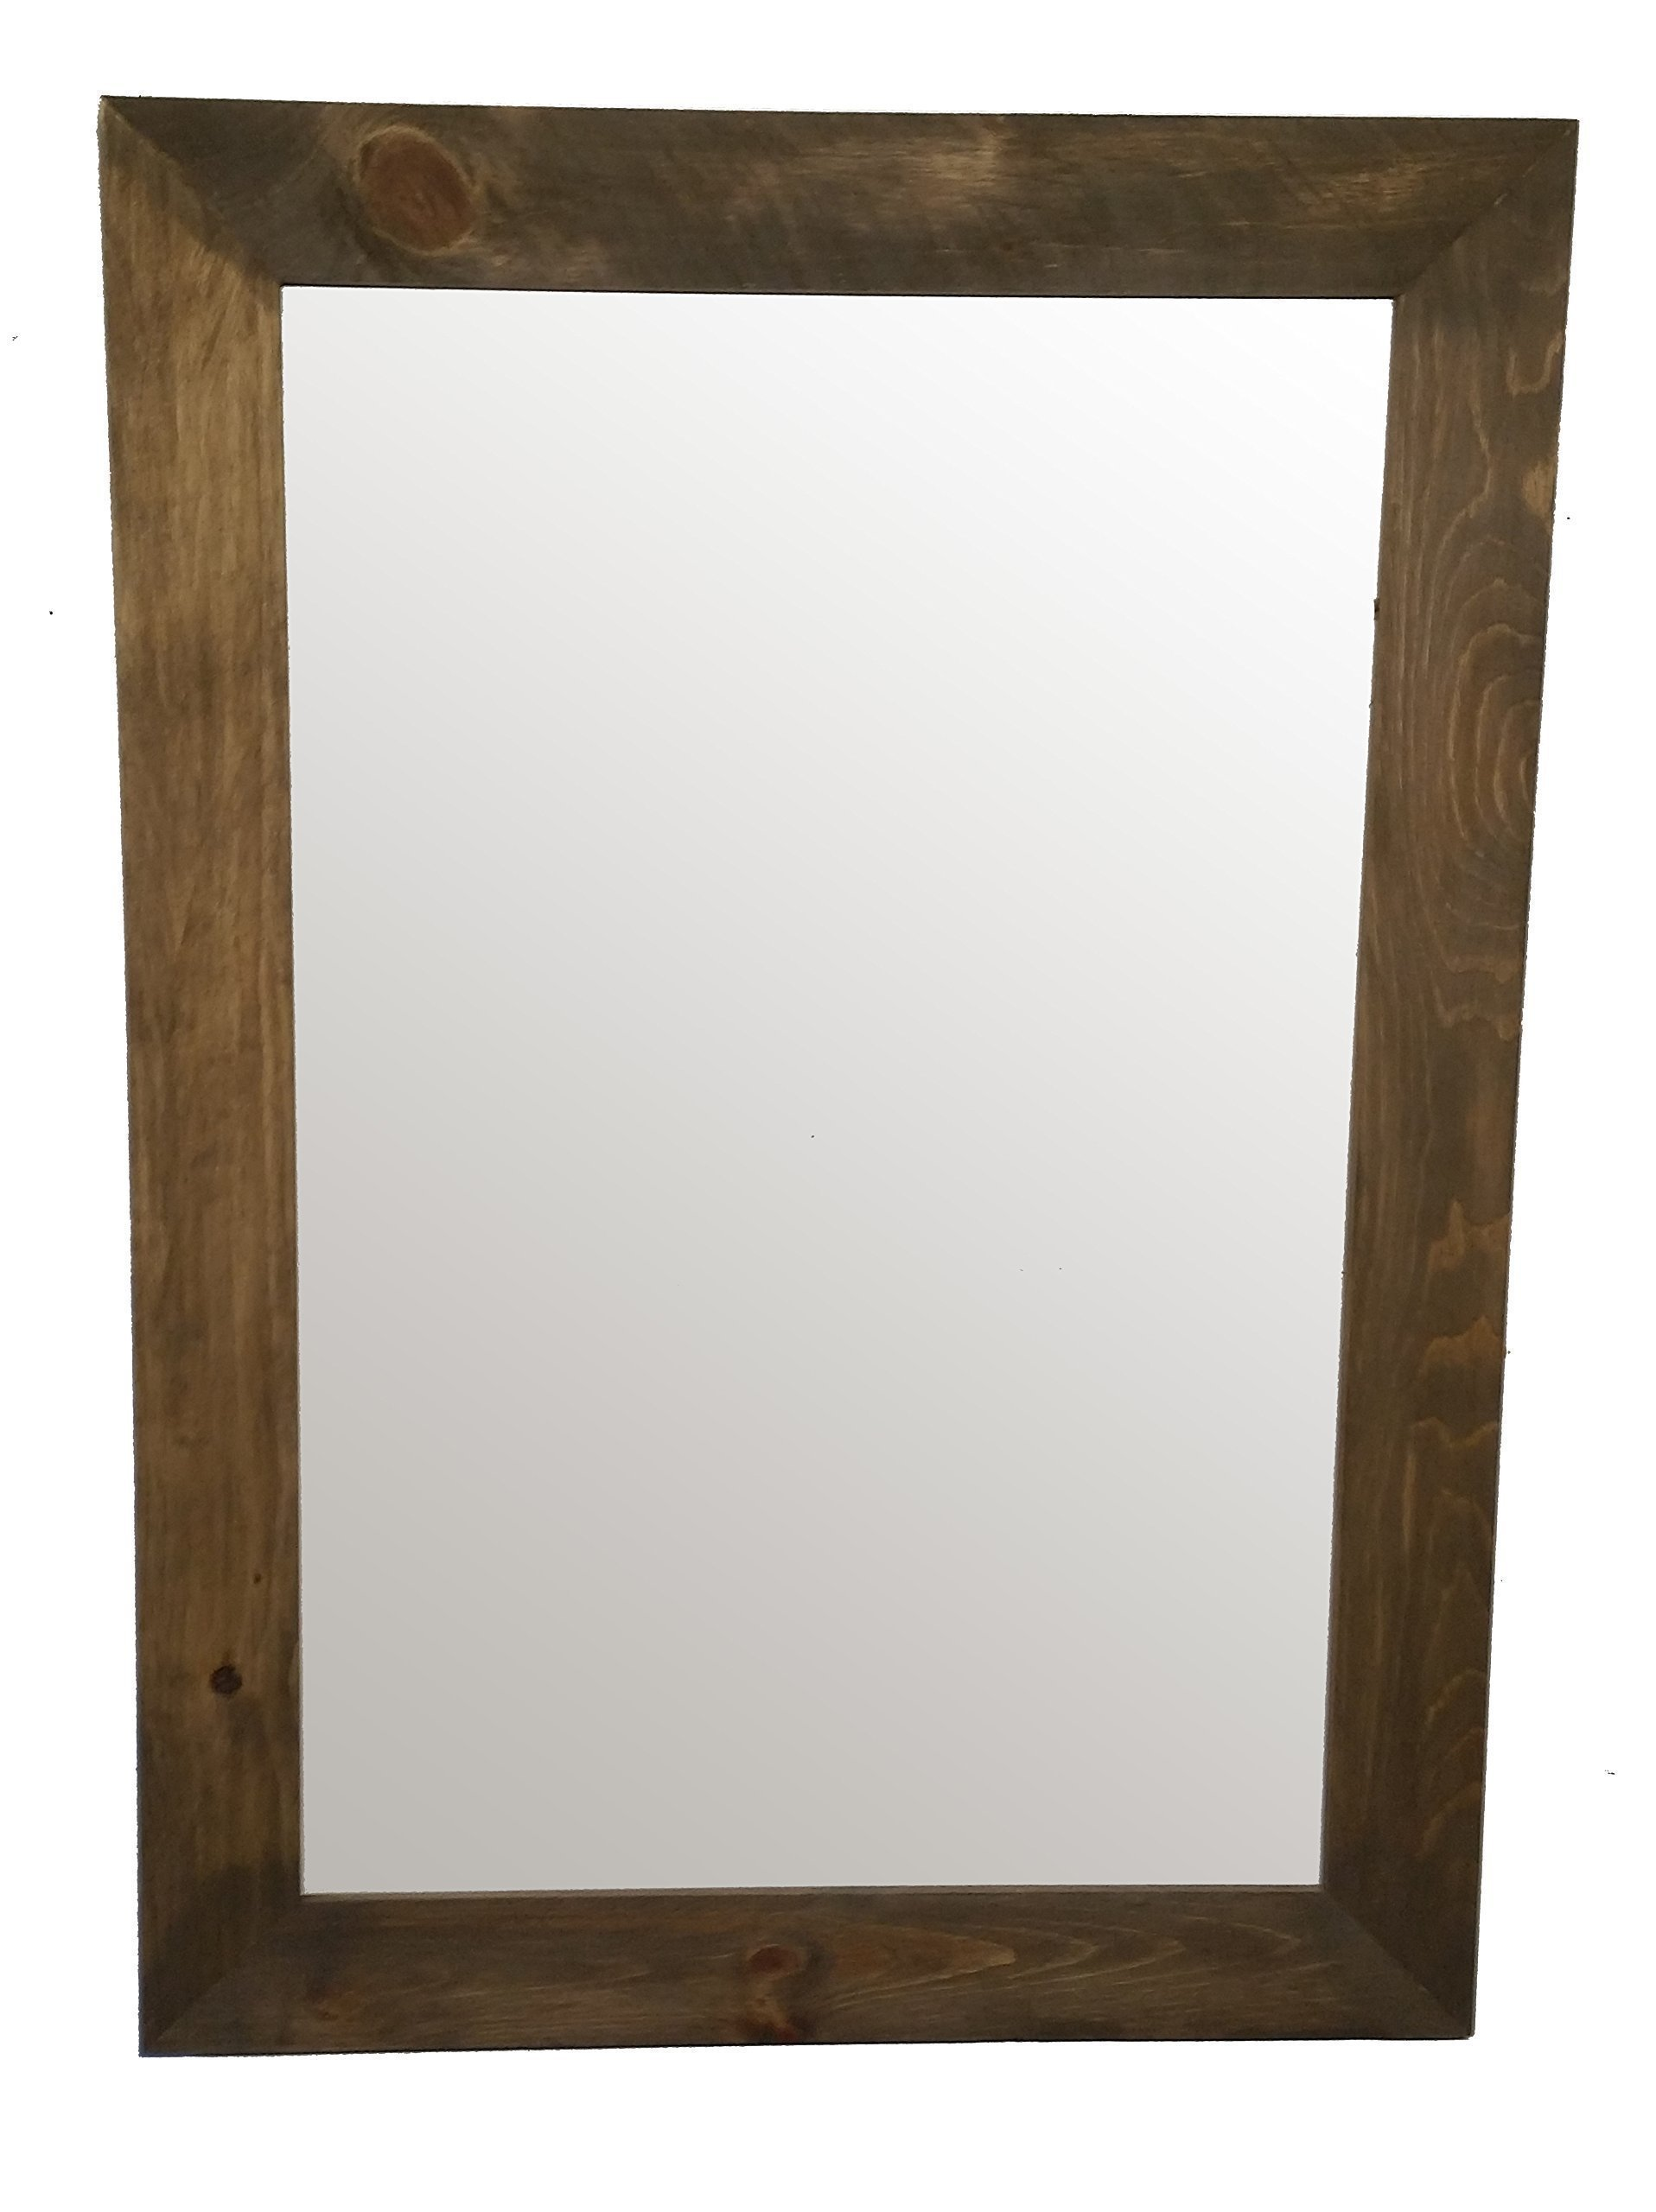 Shiplap Mirror 30 x 42 Vertical Driftwood Stain Reclaimed Wood Mirror - Large Wall Mirror - Rustic Modern Home - Home Decor - Mirror - Housewares - Woodwork - Frame by Renewed Decor